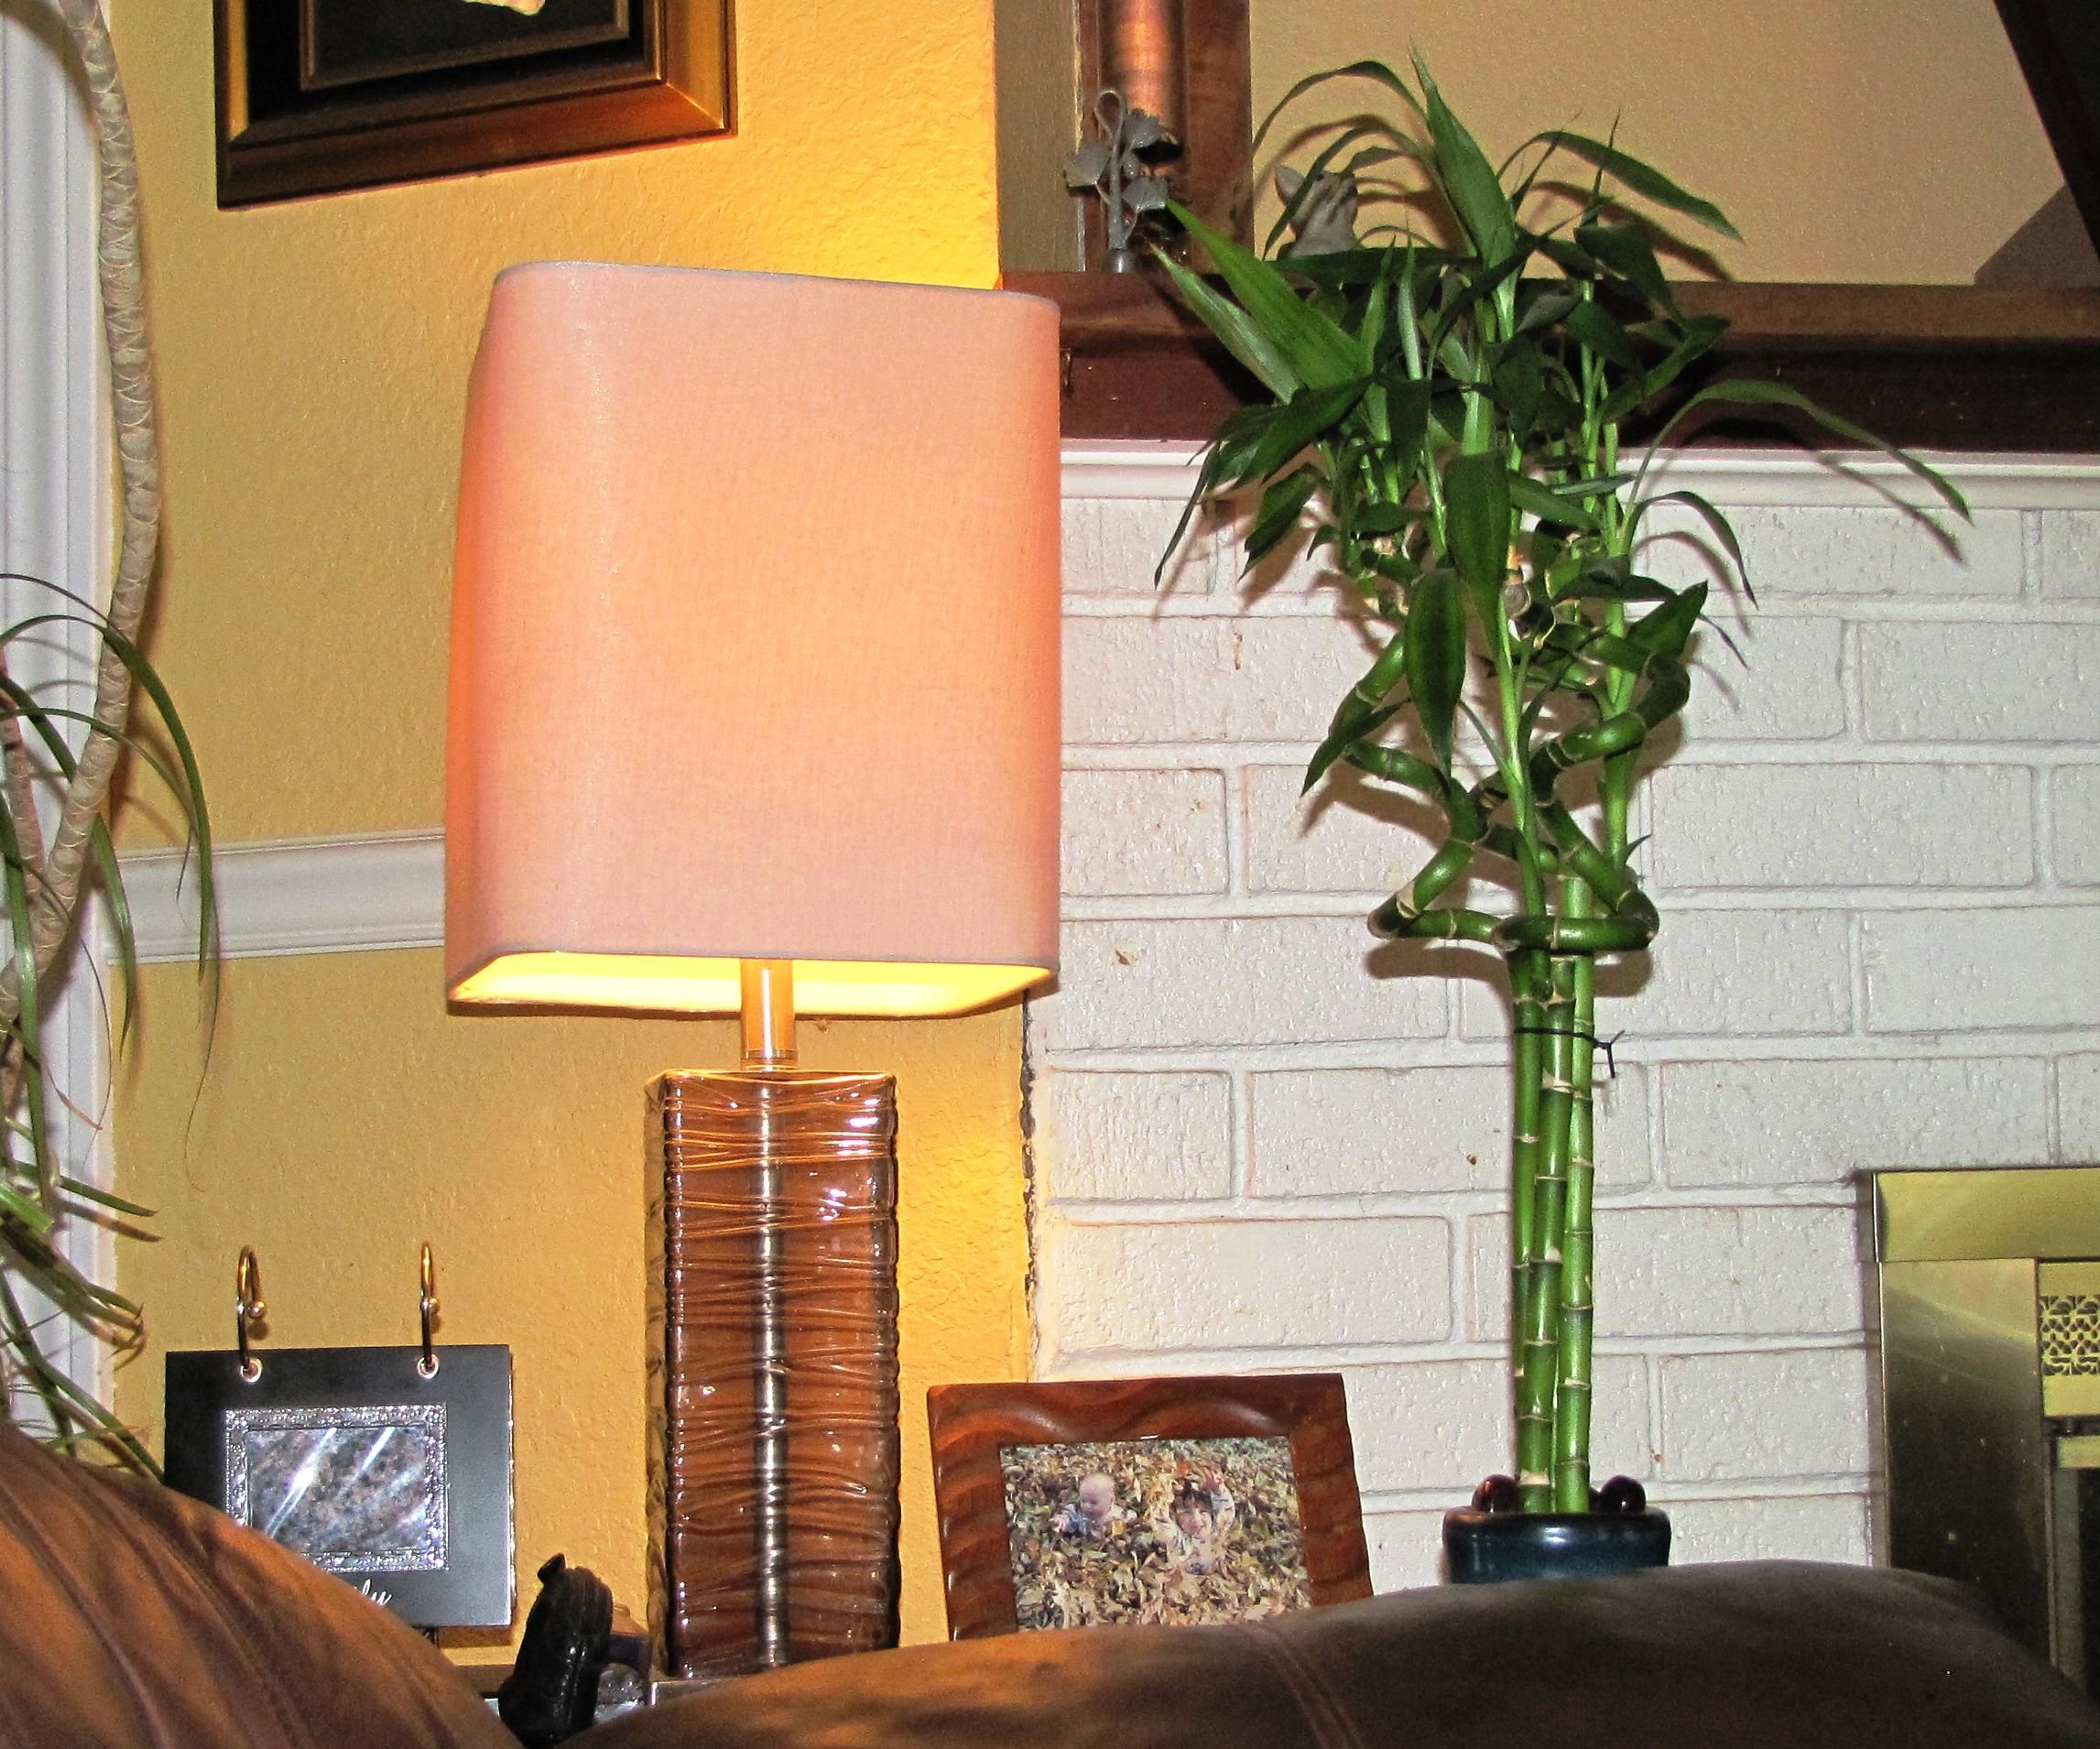 Turn a House Plant into a Light Switch